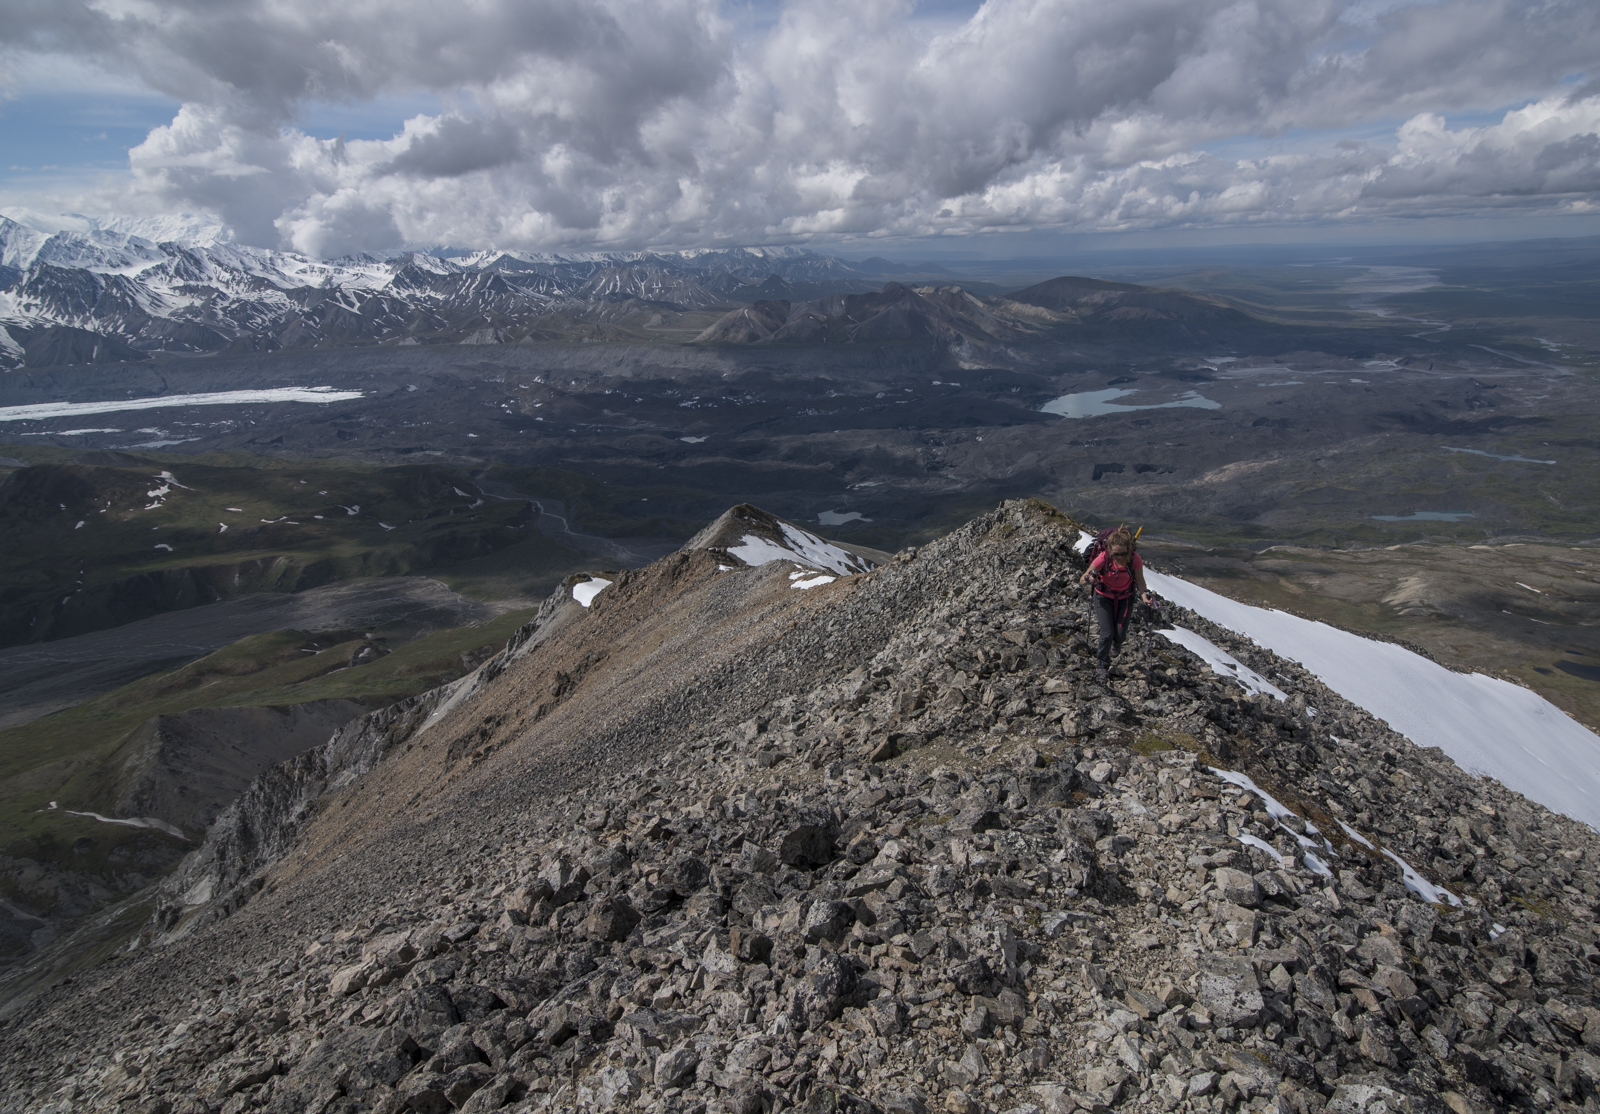 Megan making her way up the last ridge to the summit of Mount Eielson.